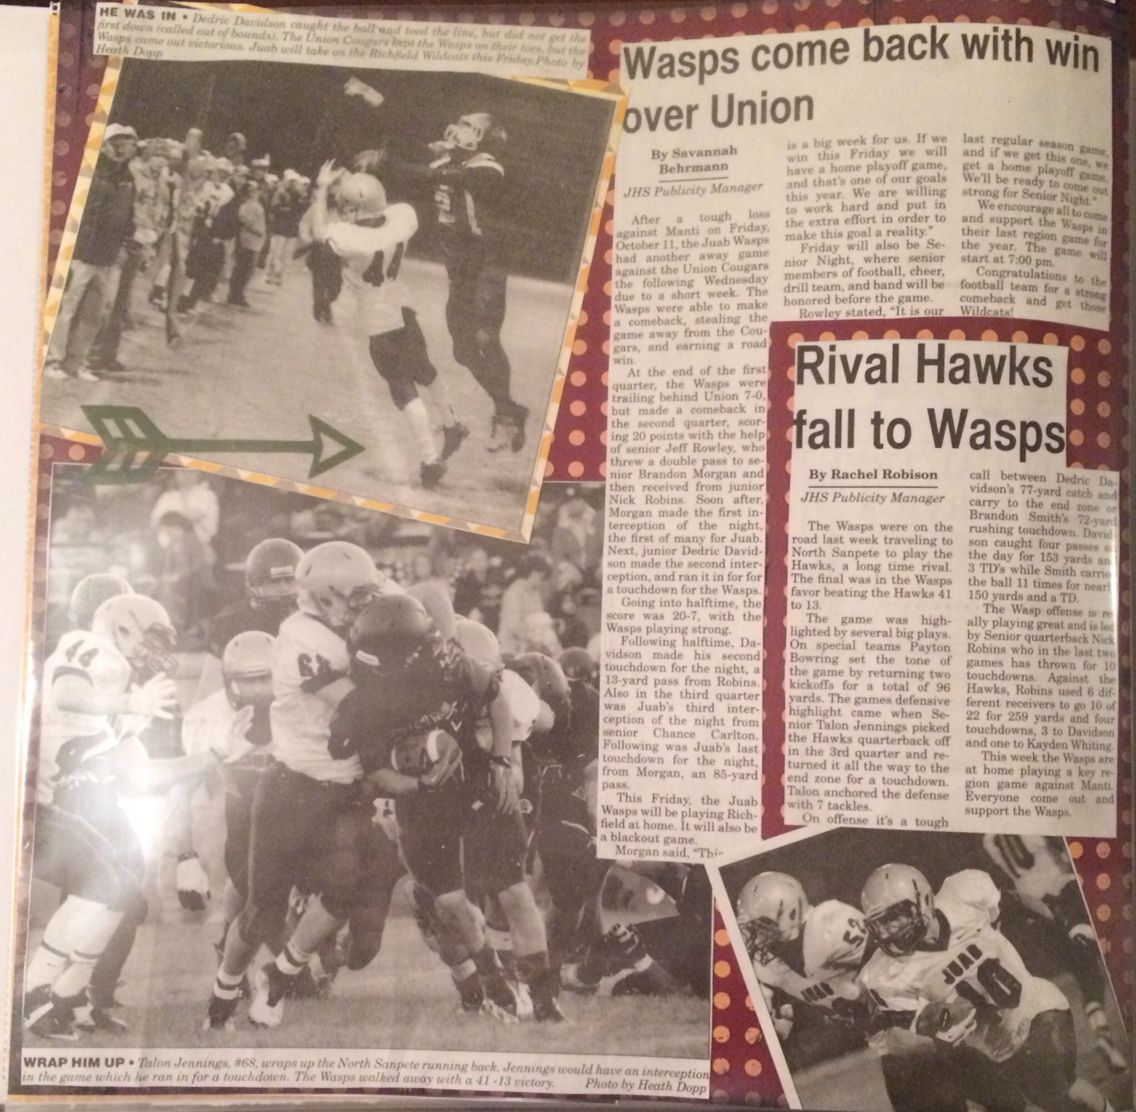 Scrapbook ideas newspaper articles - Scrapbook Ideas Newspaper Articles How To Scrapbook Newspaper Clippings Sports Scrapbook Scrapbook With Newspaper Clippings